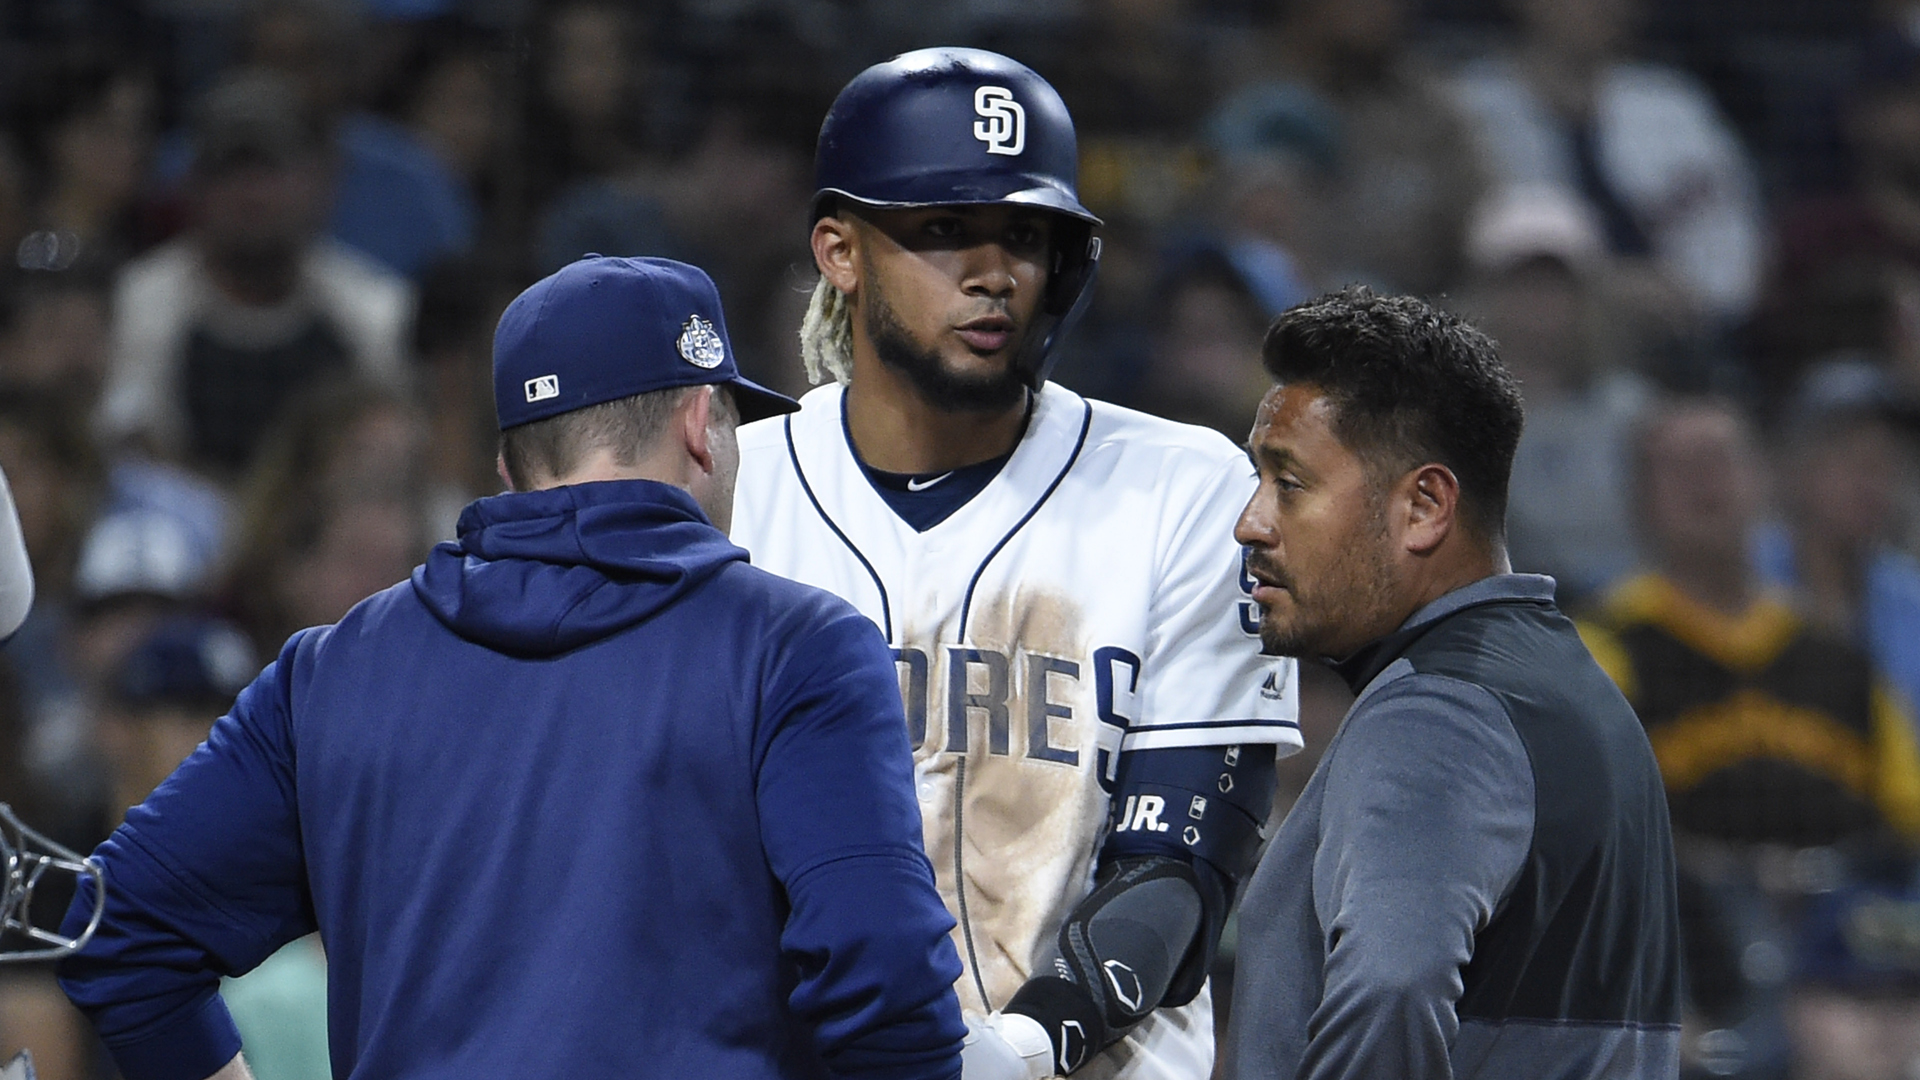 Fernando Tatis Jr. injury update: Padres' star rookie (back) likely done for season, manager says